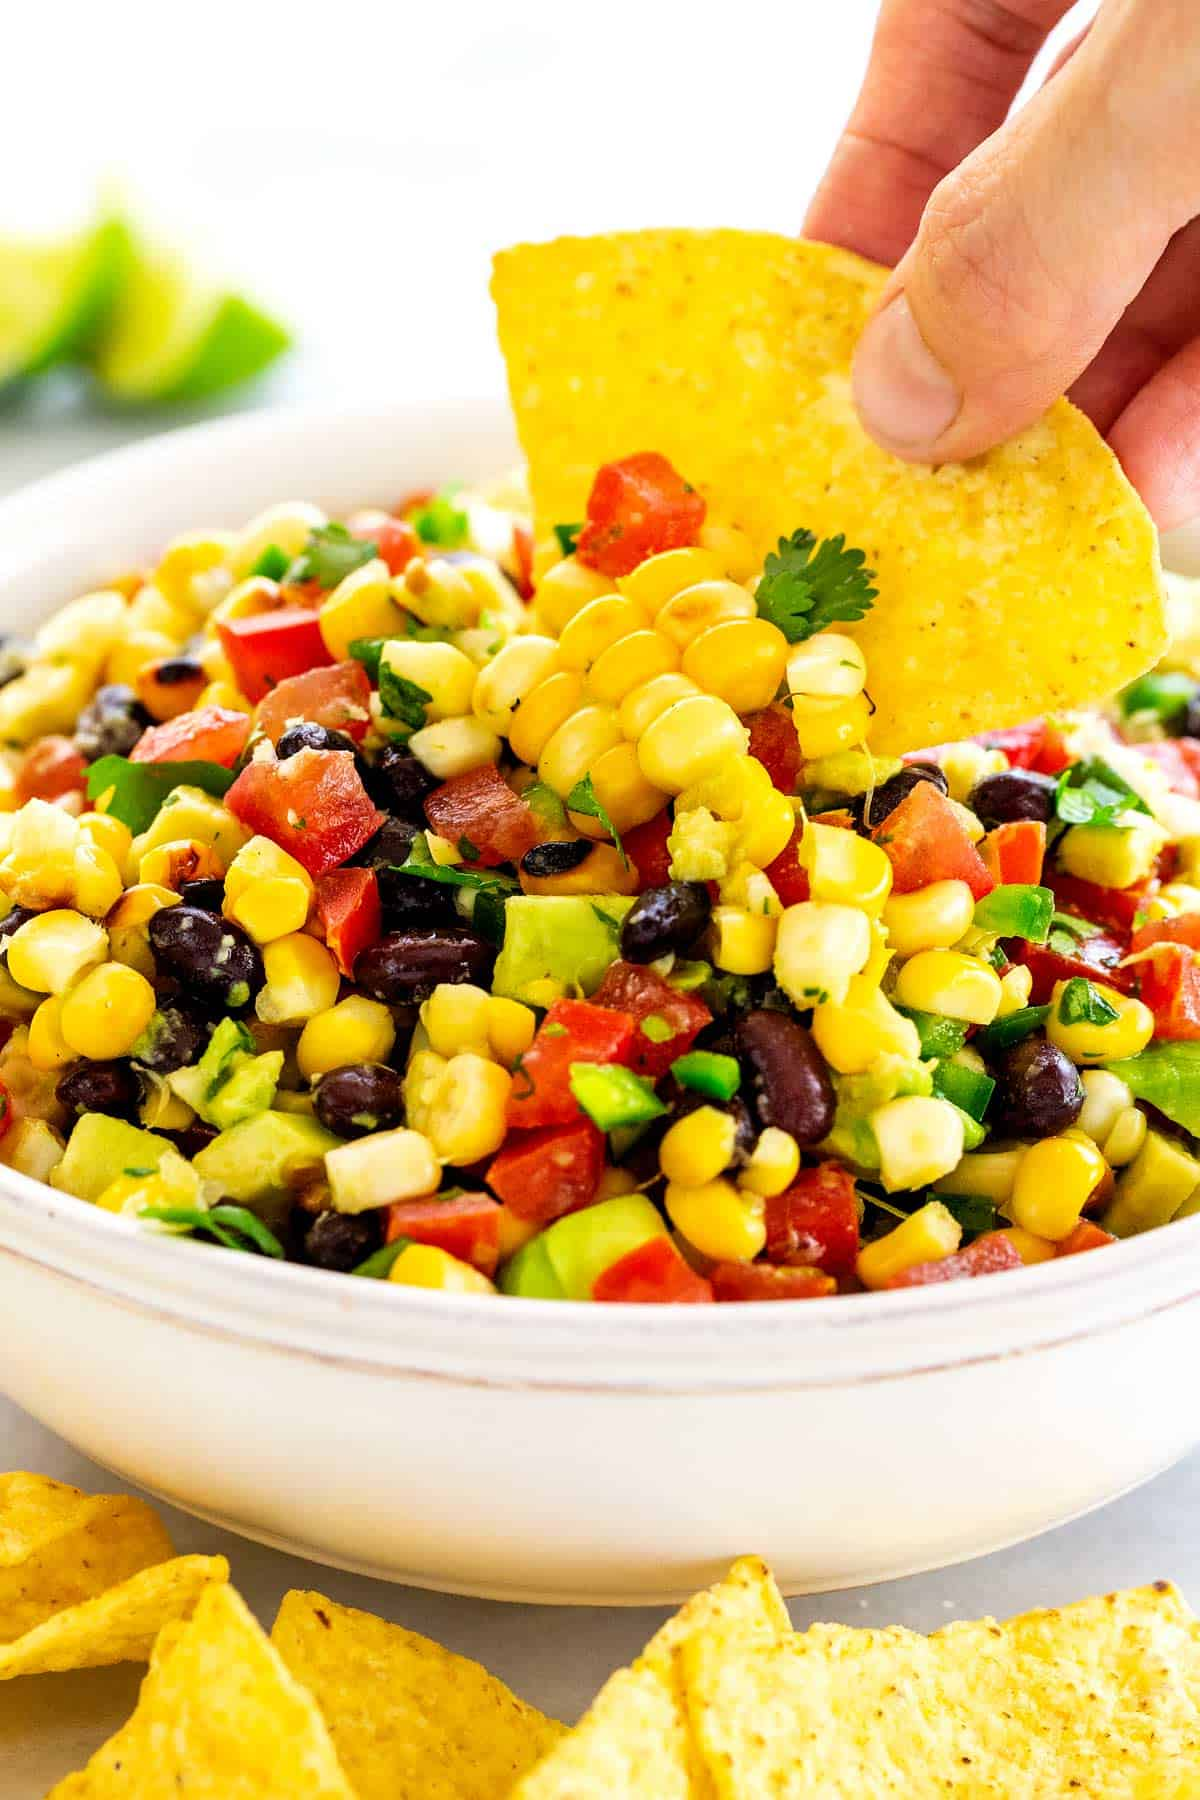 Easy corn salsa recipe with avocado and black beans. Made with either canned or grilled corn for an easy appetizer that goes perfect with tortilla chips. #cornsalsa #grilledcorn #salsa